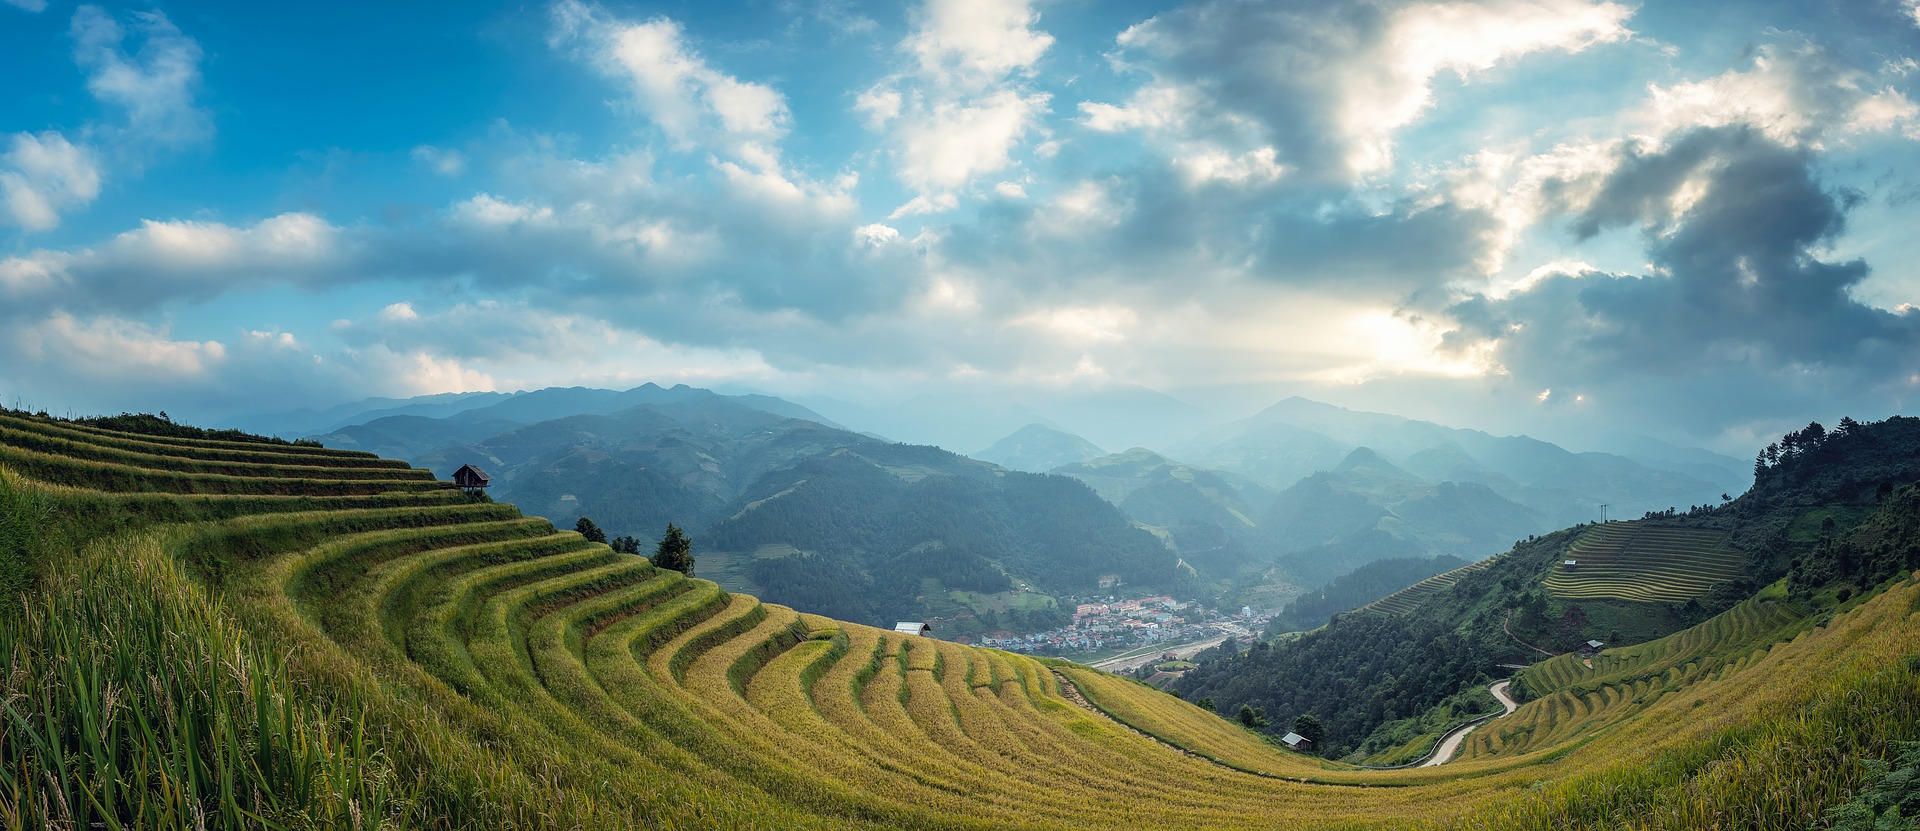 Rolling rice paddy fields on the side of hills facing a village in the valley with mountains beyond it. The sky is filled with clouds with the sun breaking through.